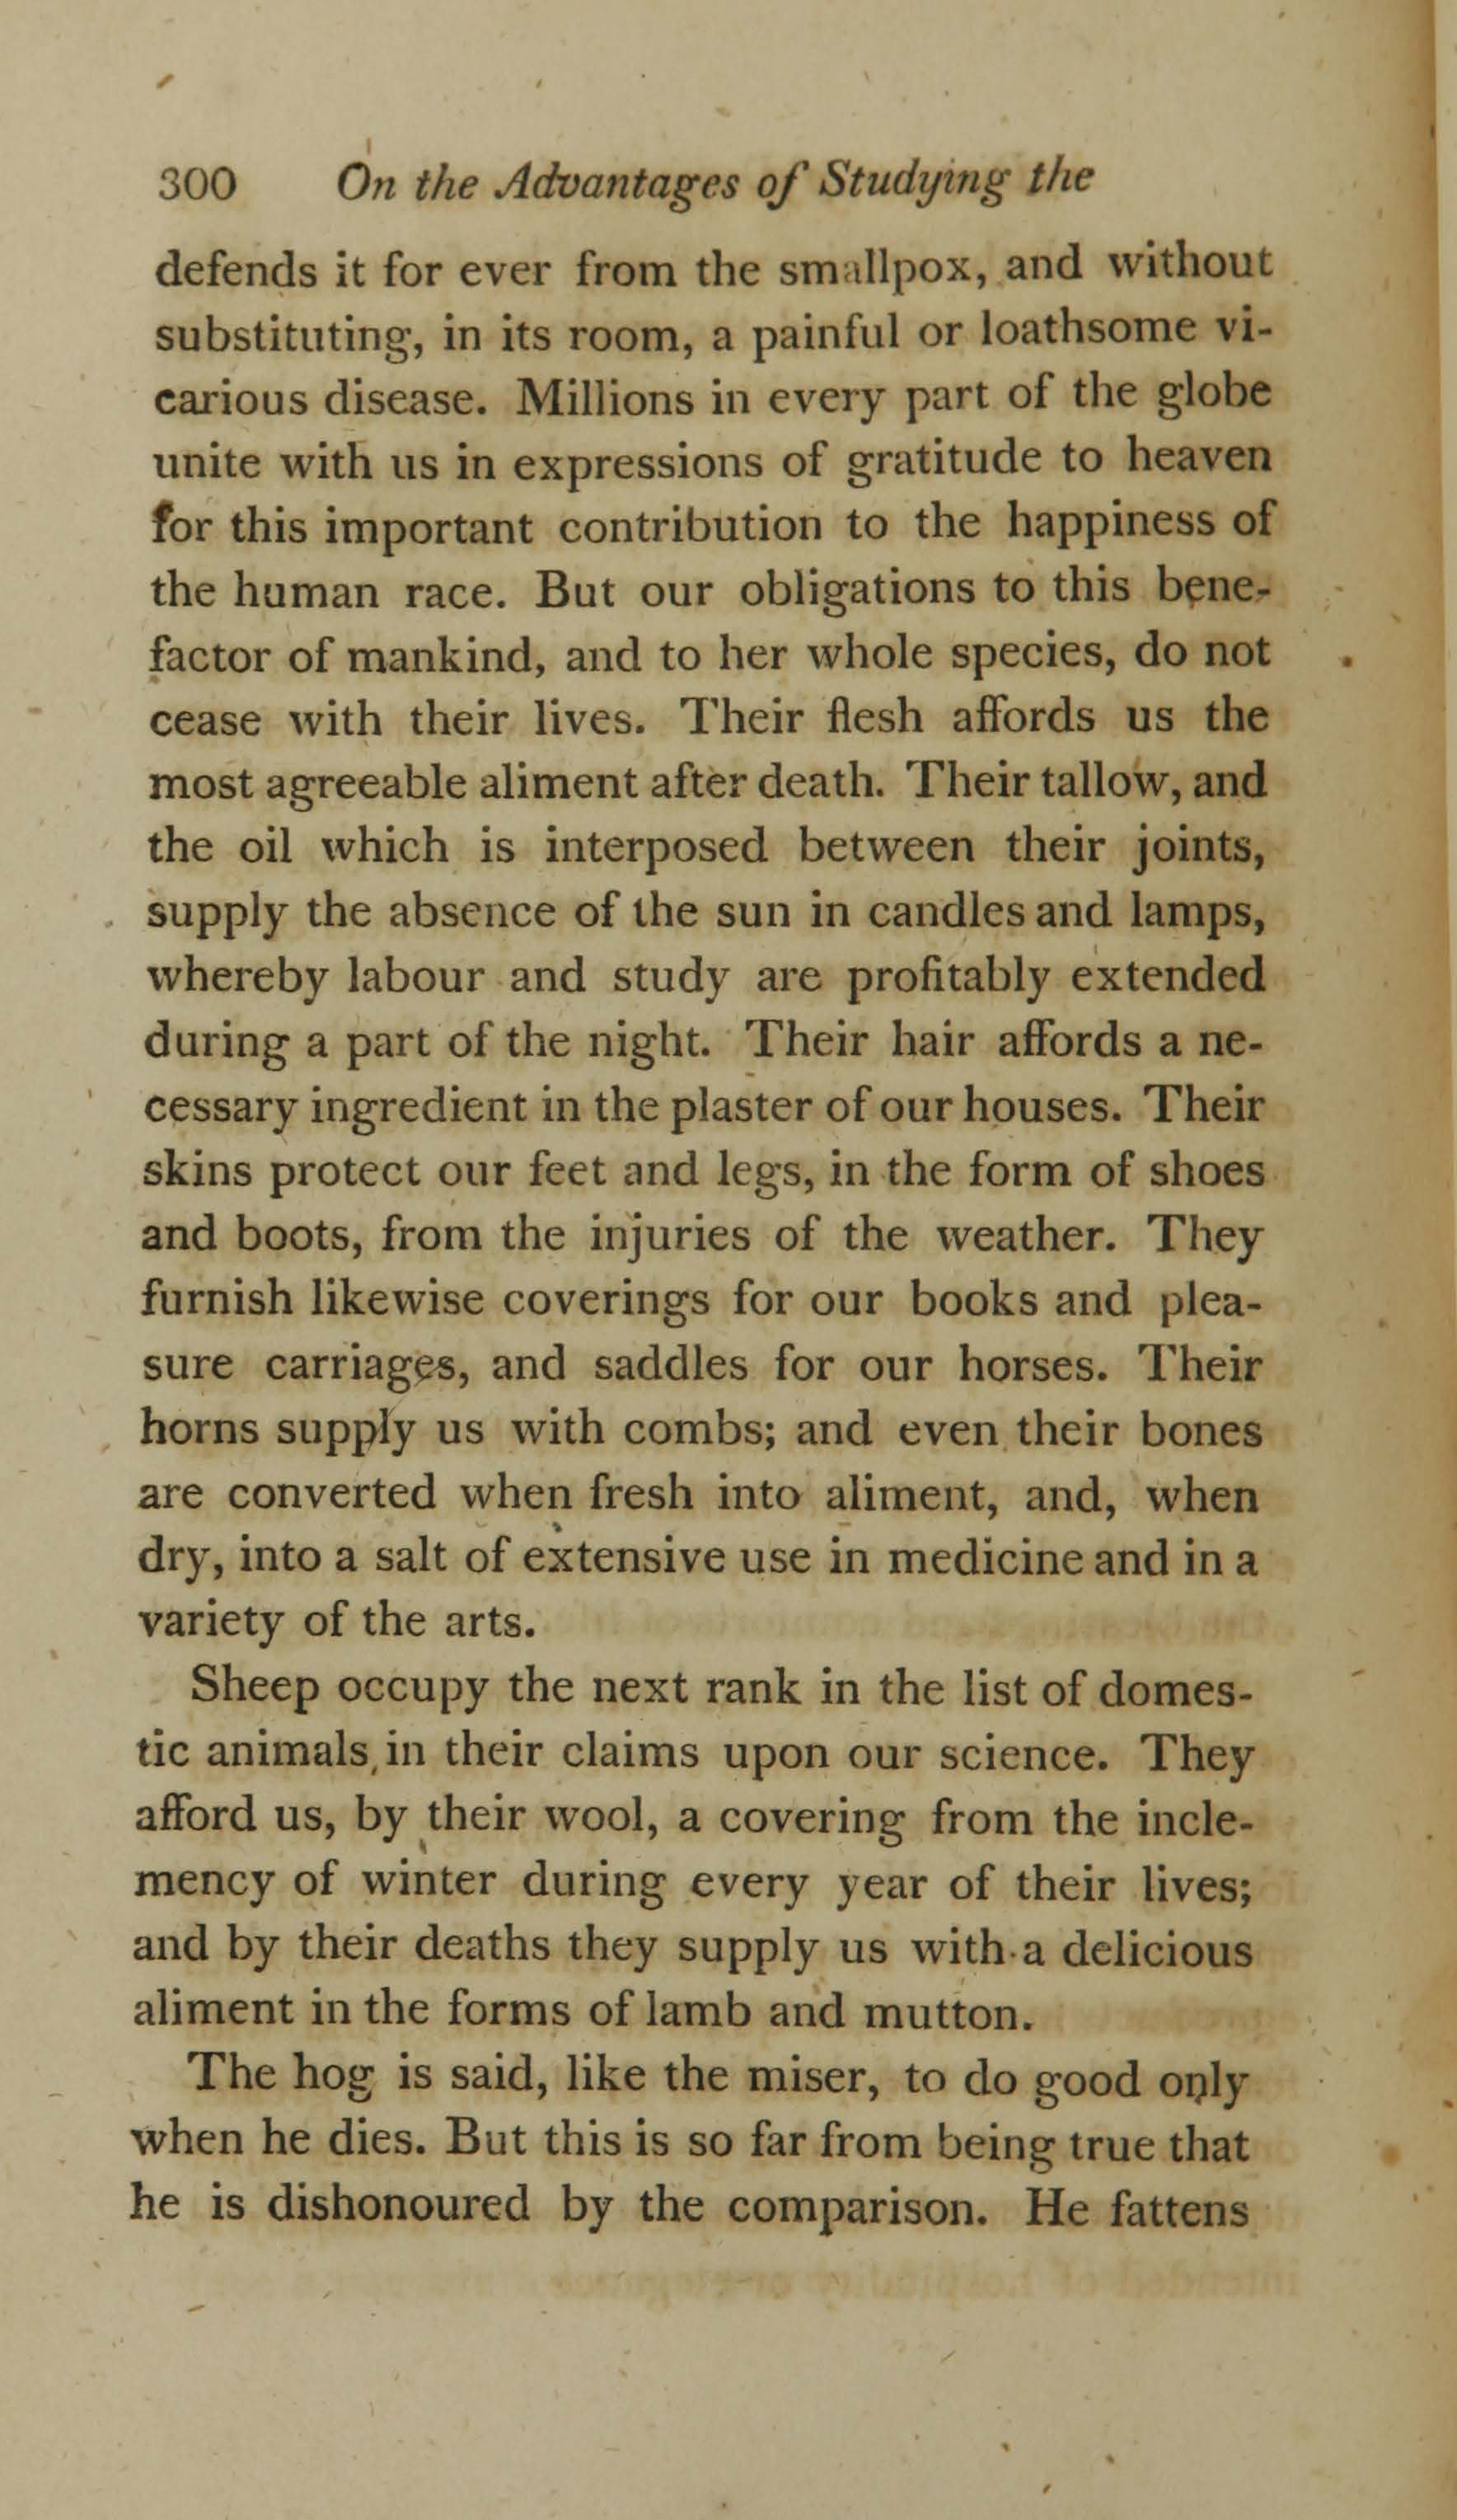 On the Duty and Advantages of Studying the Diseases of Domestic Animals (page 6)